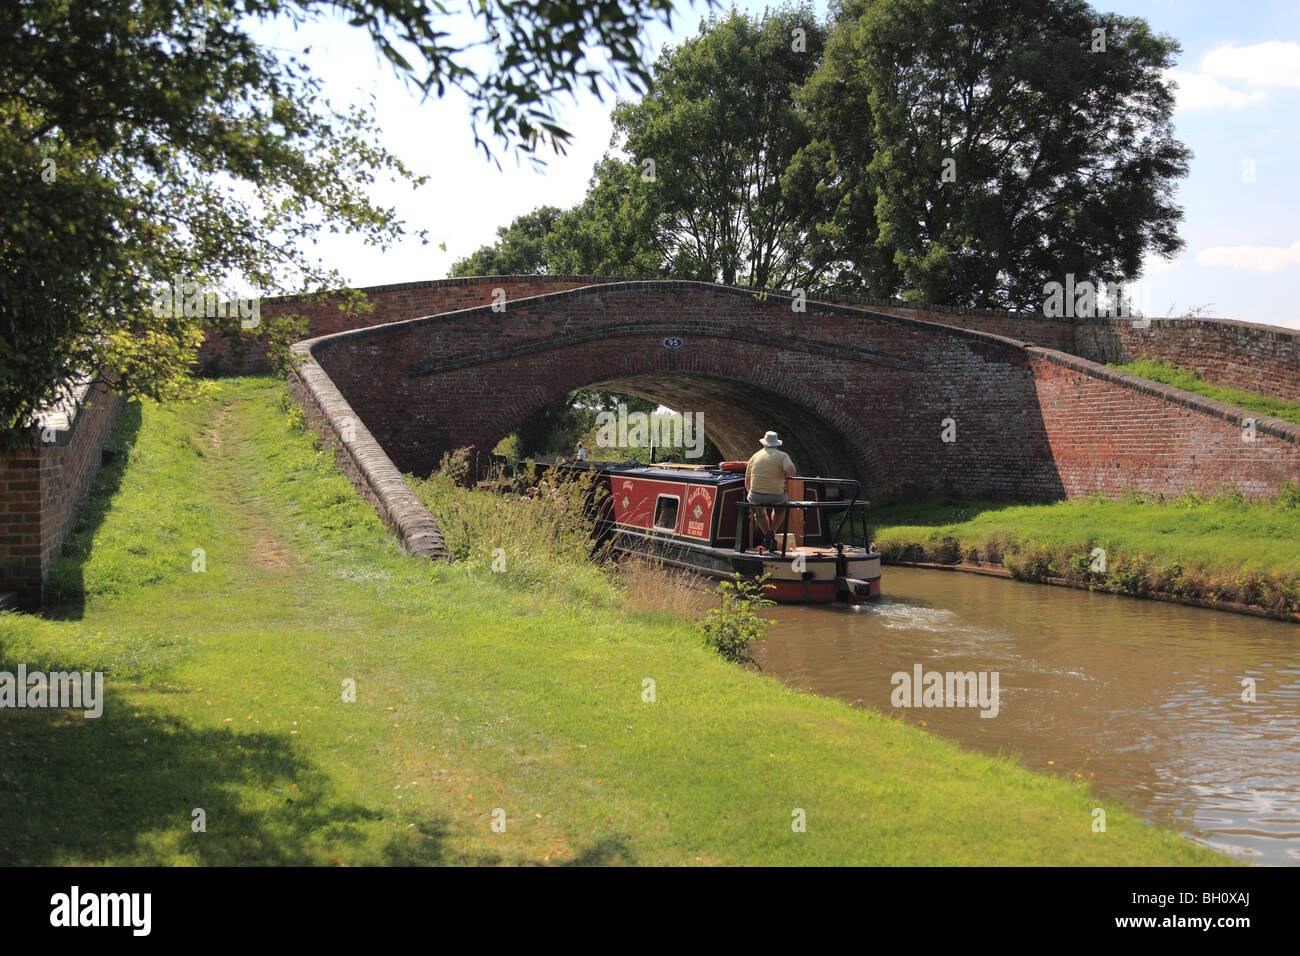 Bridge 95, at Braunston, is a turnover bridge which enables the towpath to move from one side of the canal to the - Stock Image